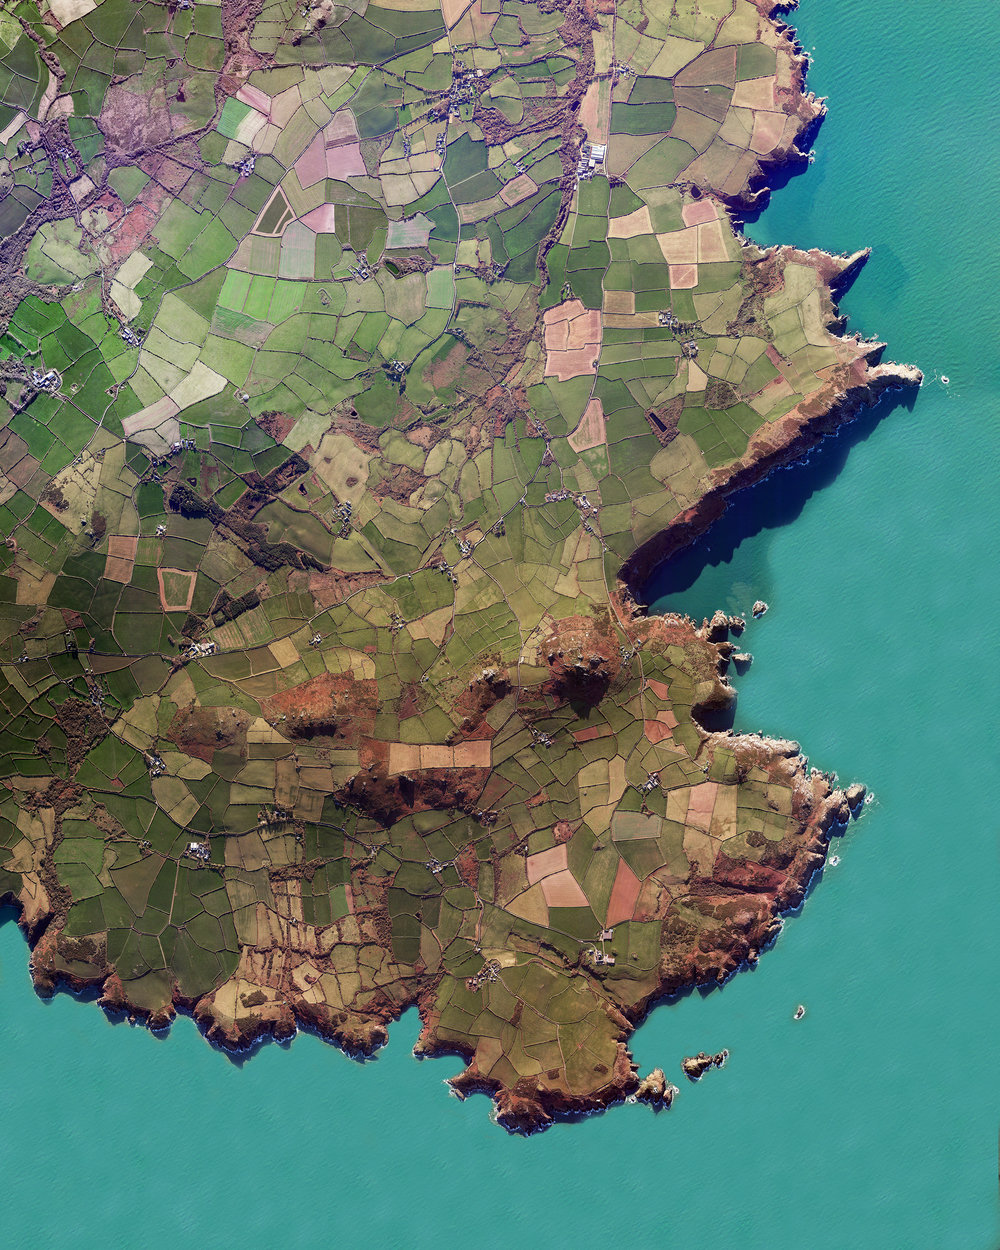 """Check out this Overview of Pembrokeshire County, Wales, created by our founder Benjamin Grant. This area is home to Pembrokeshire Coast National Park, which includes a 186-mile walking trail called the Pembrokeshire Coast Path. In the north of the county are the Preseli Hills, a wide stretch of high moorland with many prehistoric sites and the probable source of bluestones used to construct the inner circle of Stonehenge in England.  51°50'42.0""""N, 4°50'32.0""""W  Source imagery: DigitalGlobe"""